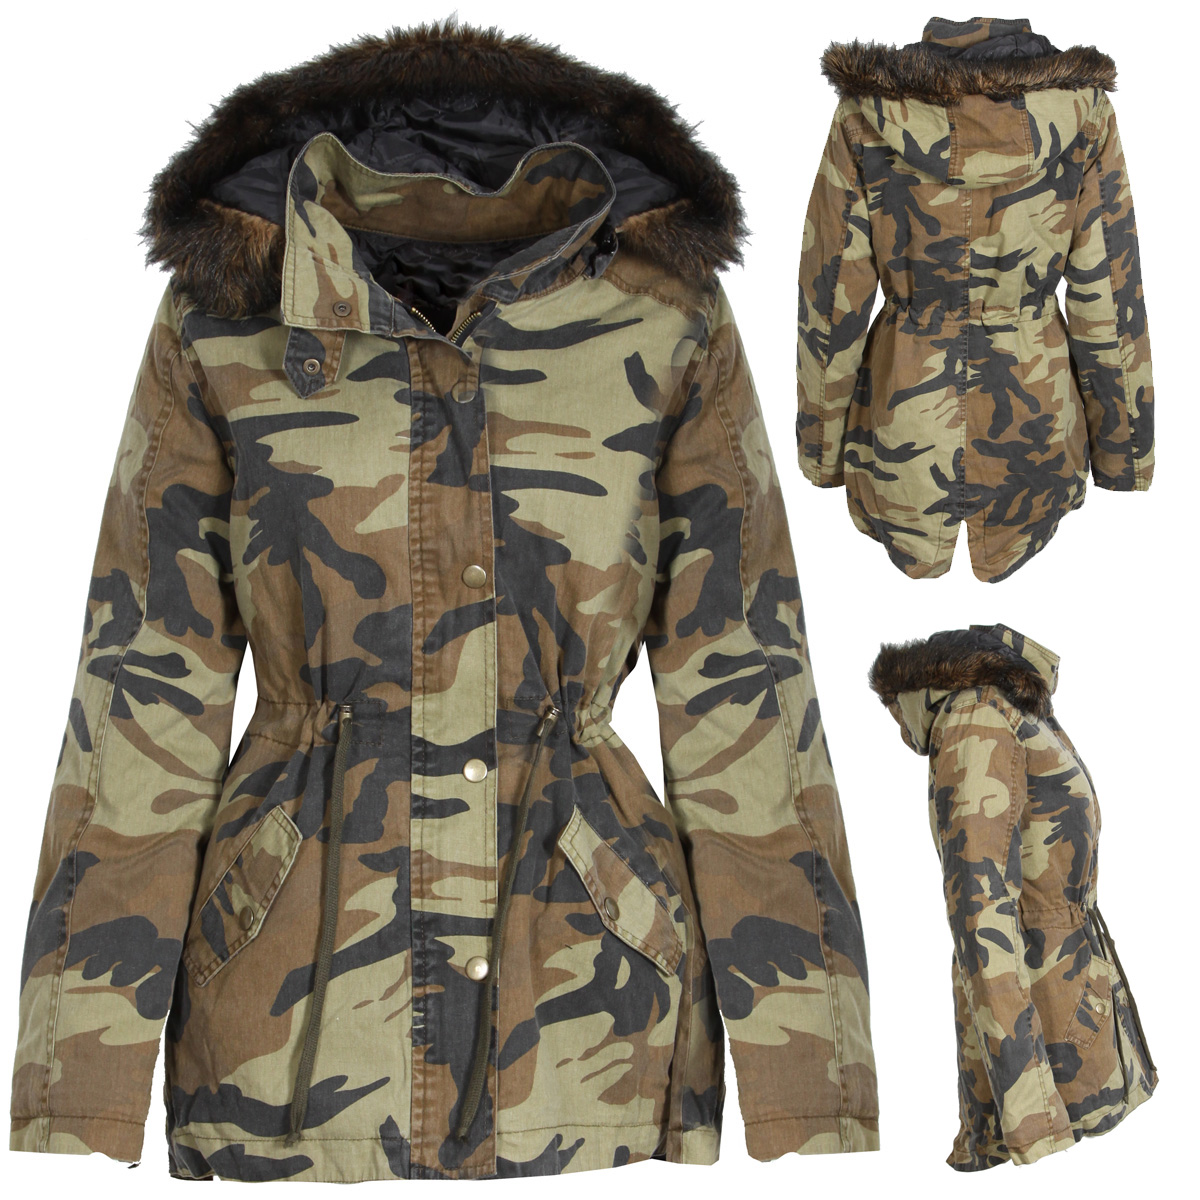 NEW WOMENS CAMO CAMOUFLAGE PARKA WINTER COAT JACKET FUR TRIM HOOD ...